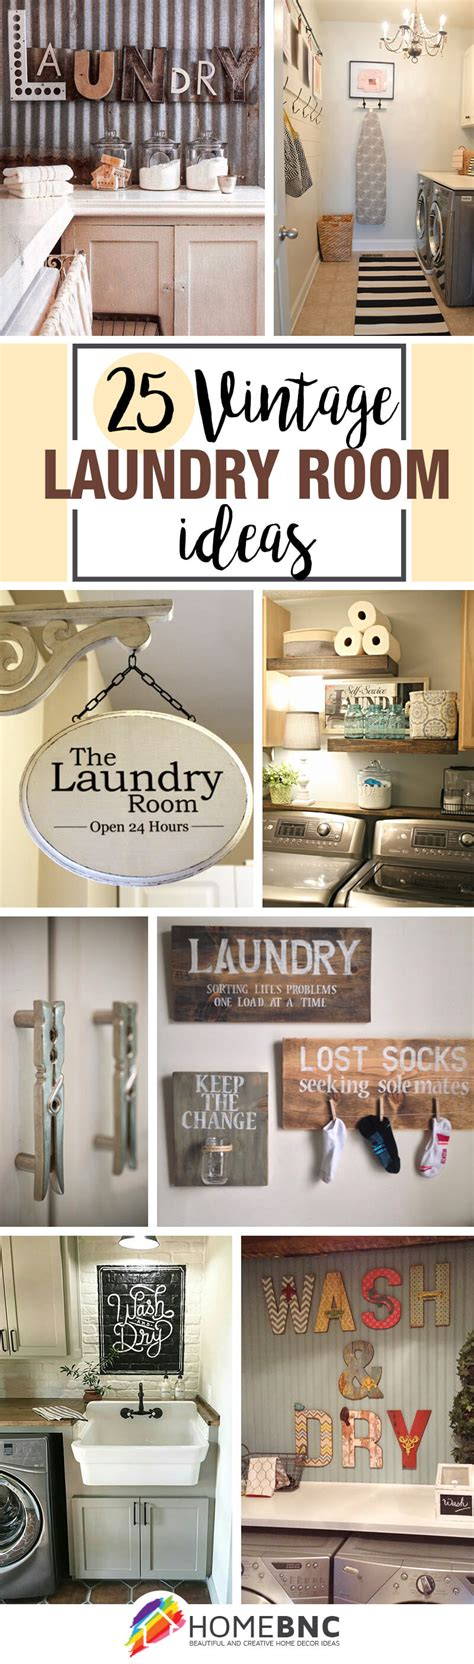 Vintage Laundry Room Decorating Ideas 25 Best Vintage Laundry Room Decor Ideas And Designs For 2017